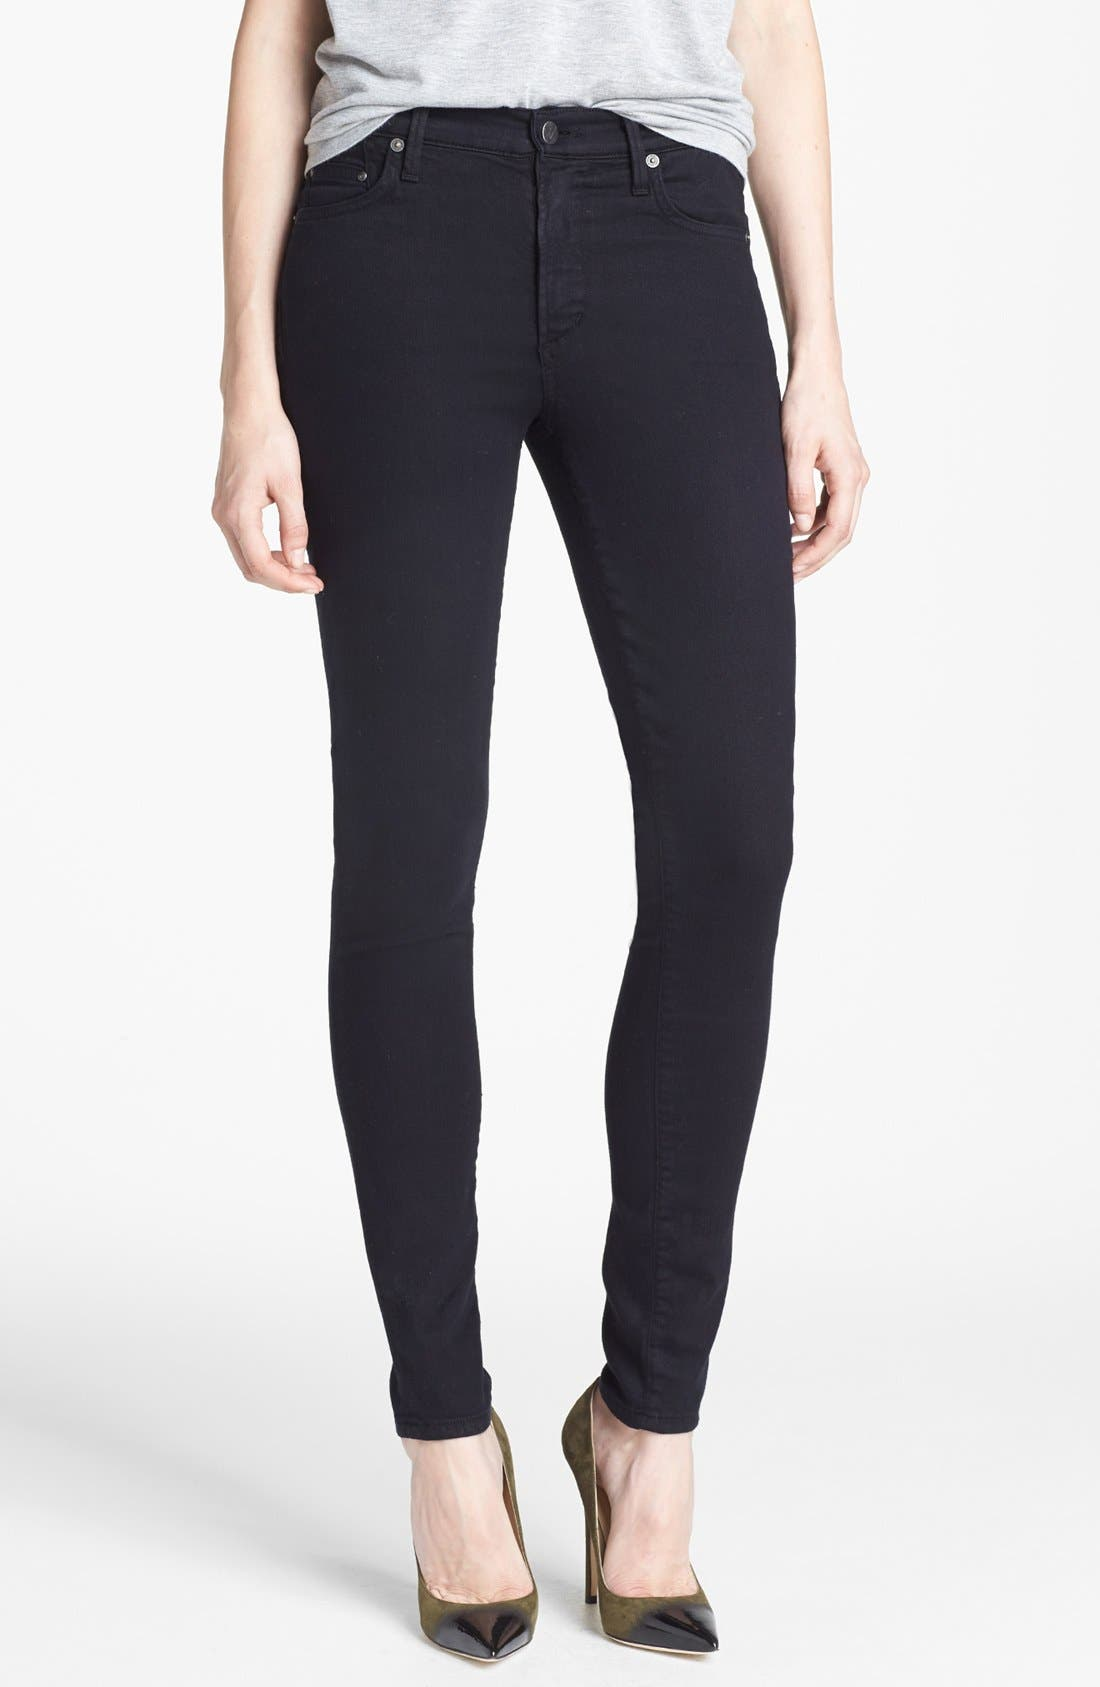 Alternate Image 1 Selected - Citizens of Humanity 'Rocket' Skinny Jeans (Black Diamond)